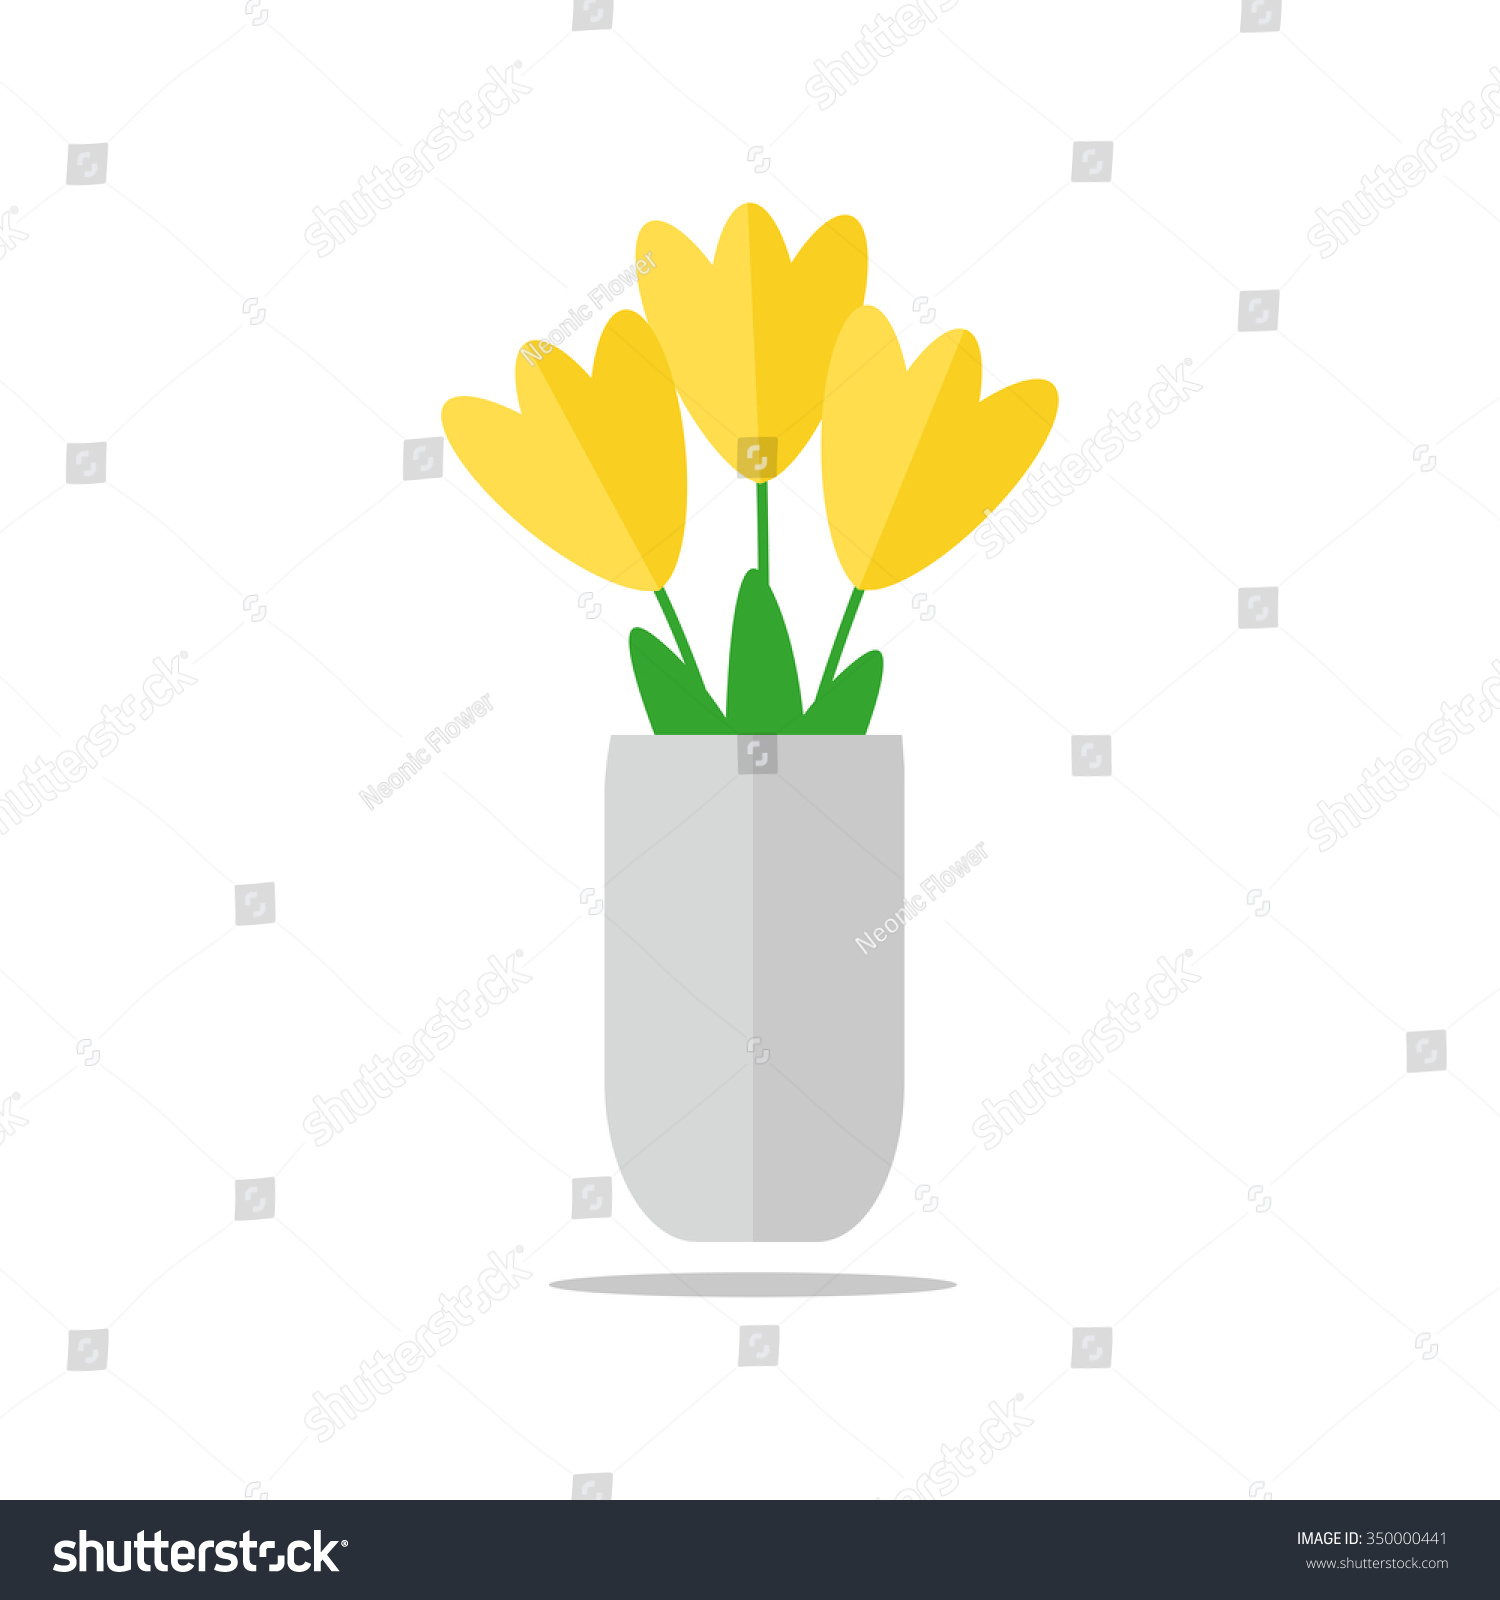 Flower vase vase flower isolated icon stock illustration 350000441 flower vase vase of flower isolated icon on white background yellow tulips in the reviewsmspy